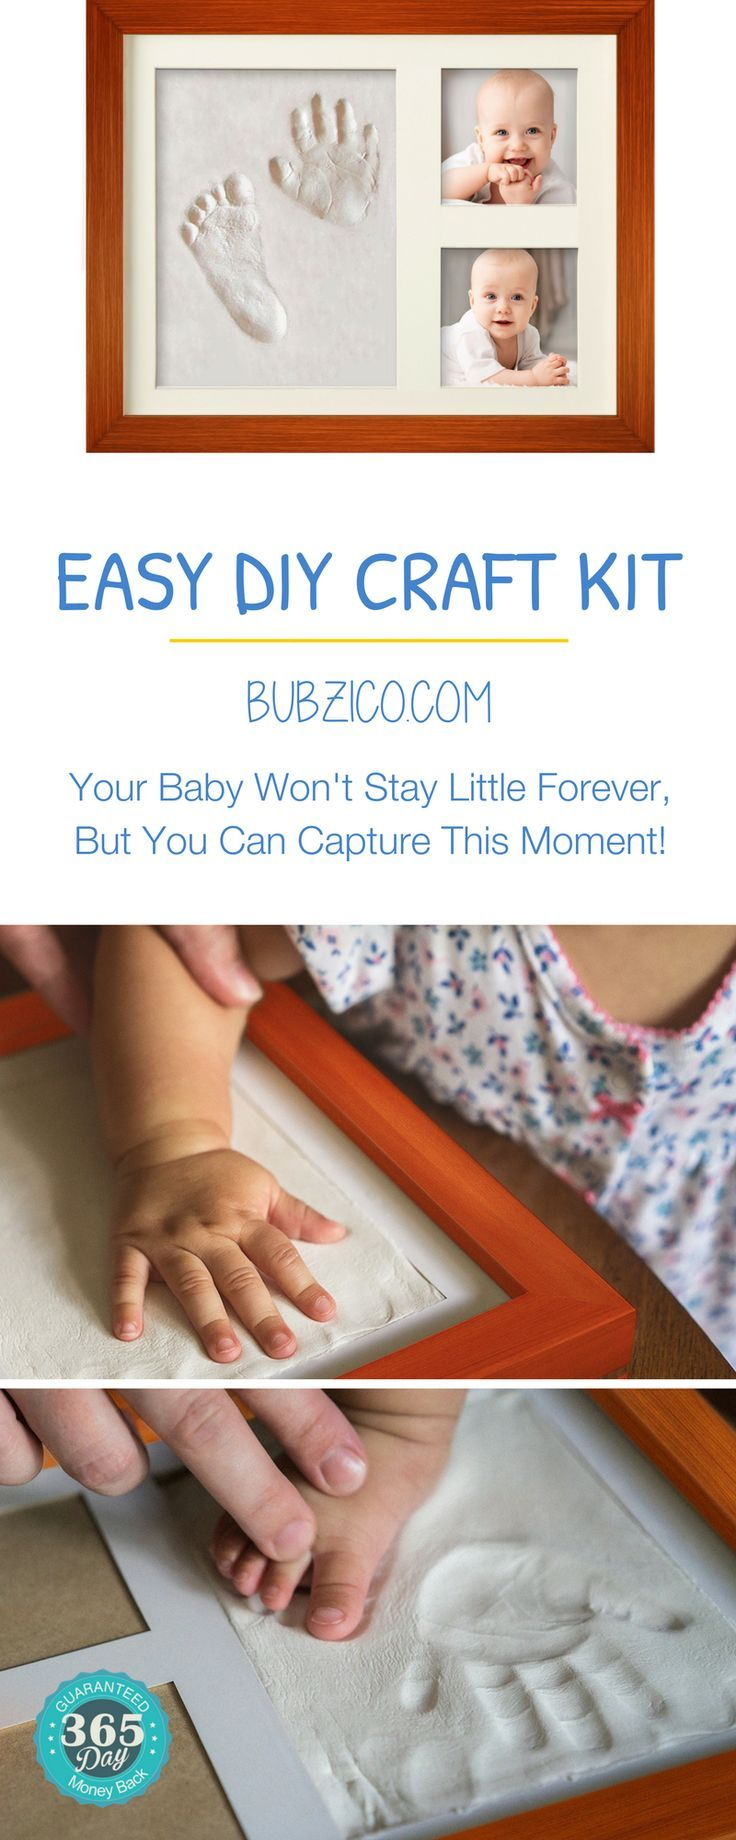 """These inexpensive non-toxic clay, custom keepsakes are a fun & easy DIY craft project for everyone! 1: knead the soft, non-toxic clay. 2: make the impression of baby's hand/foot. 3: add 2 cute baby photographs & you are done! Makes a meaningful & unique baby gift for grandparents & aunties. Awesome for the #christmasgifts, #showergift or baby's """"firsts"""". Shop #BubziCo personalized & sentimental keepsakes #NewBornPortraits 